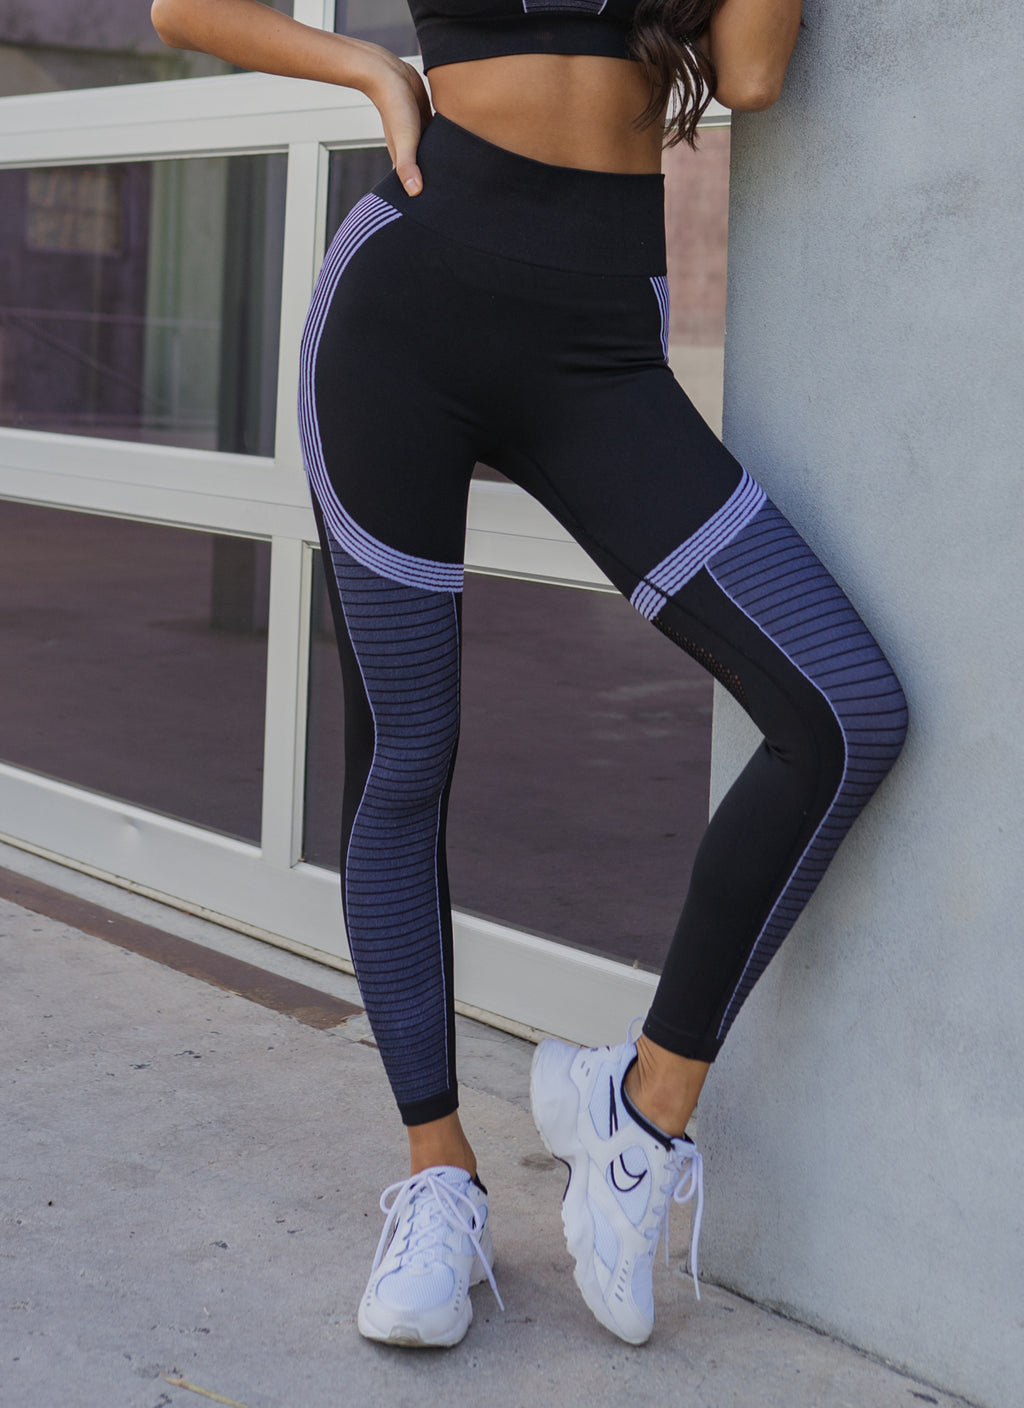 Astoria SWIFT Full Length Legging - Black/Grey